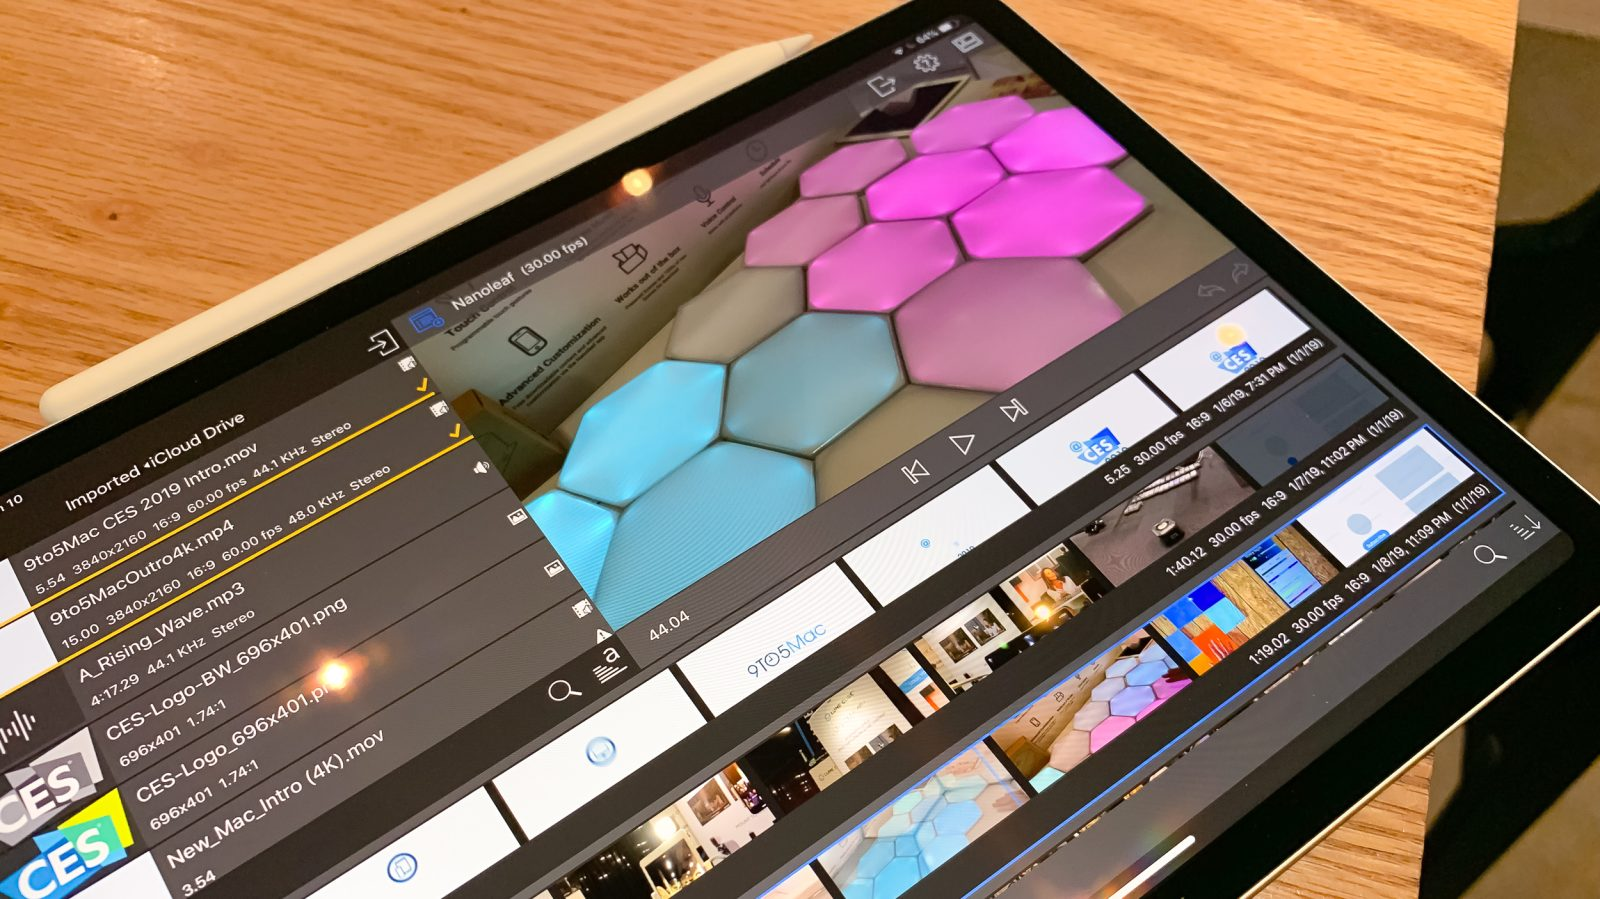 An iOS-only video workflow: Surprises, challenges, and hopes